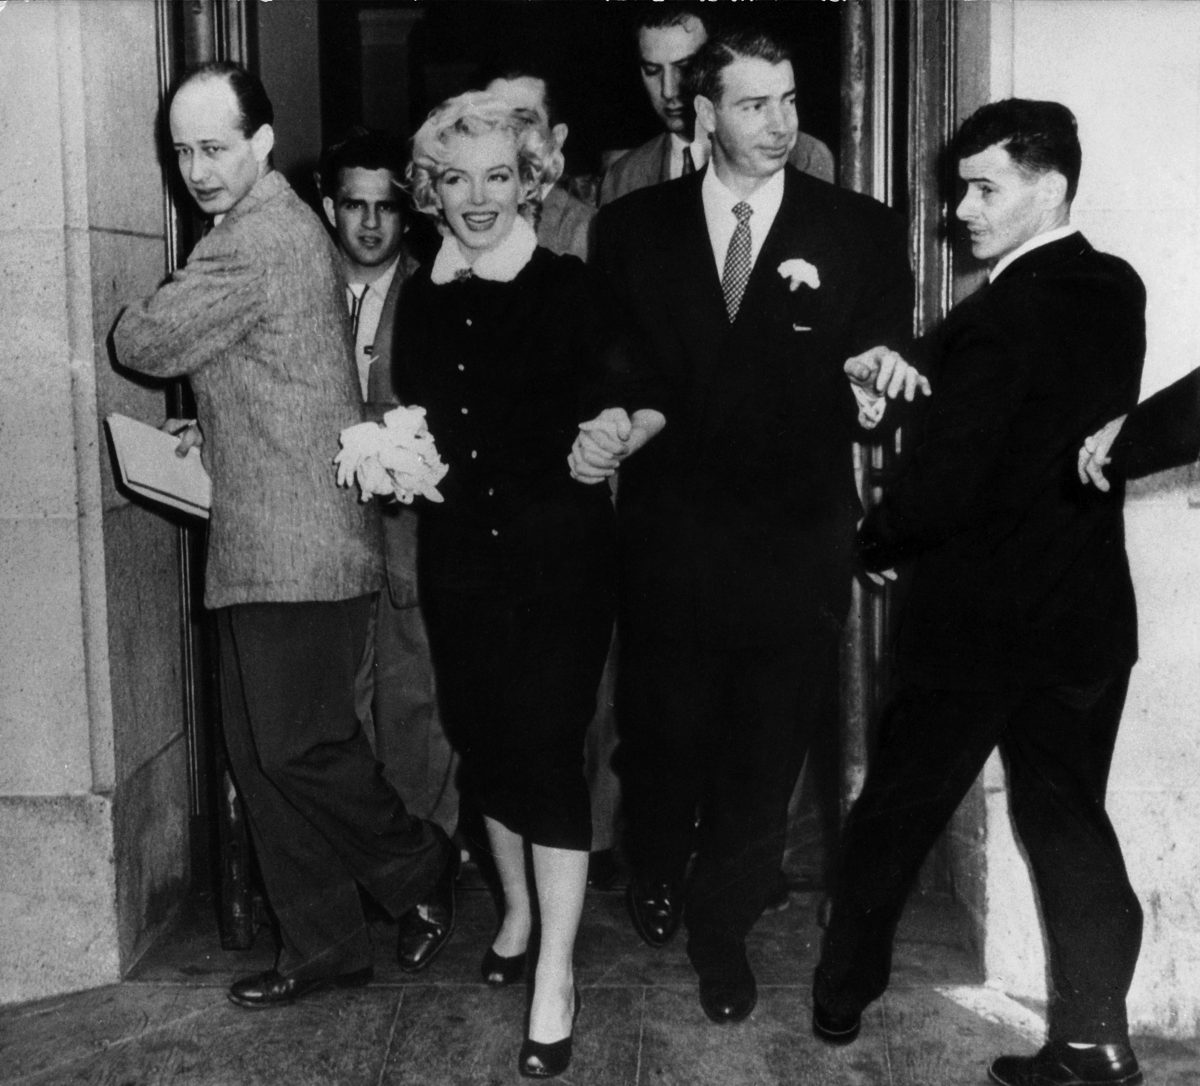 Marilyn Monroe leaves courthouse With Joe Dimaggio